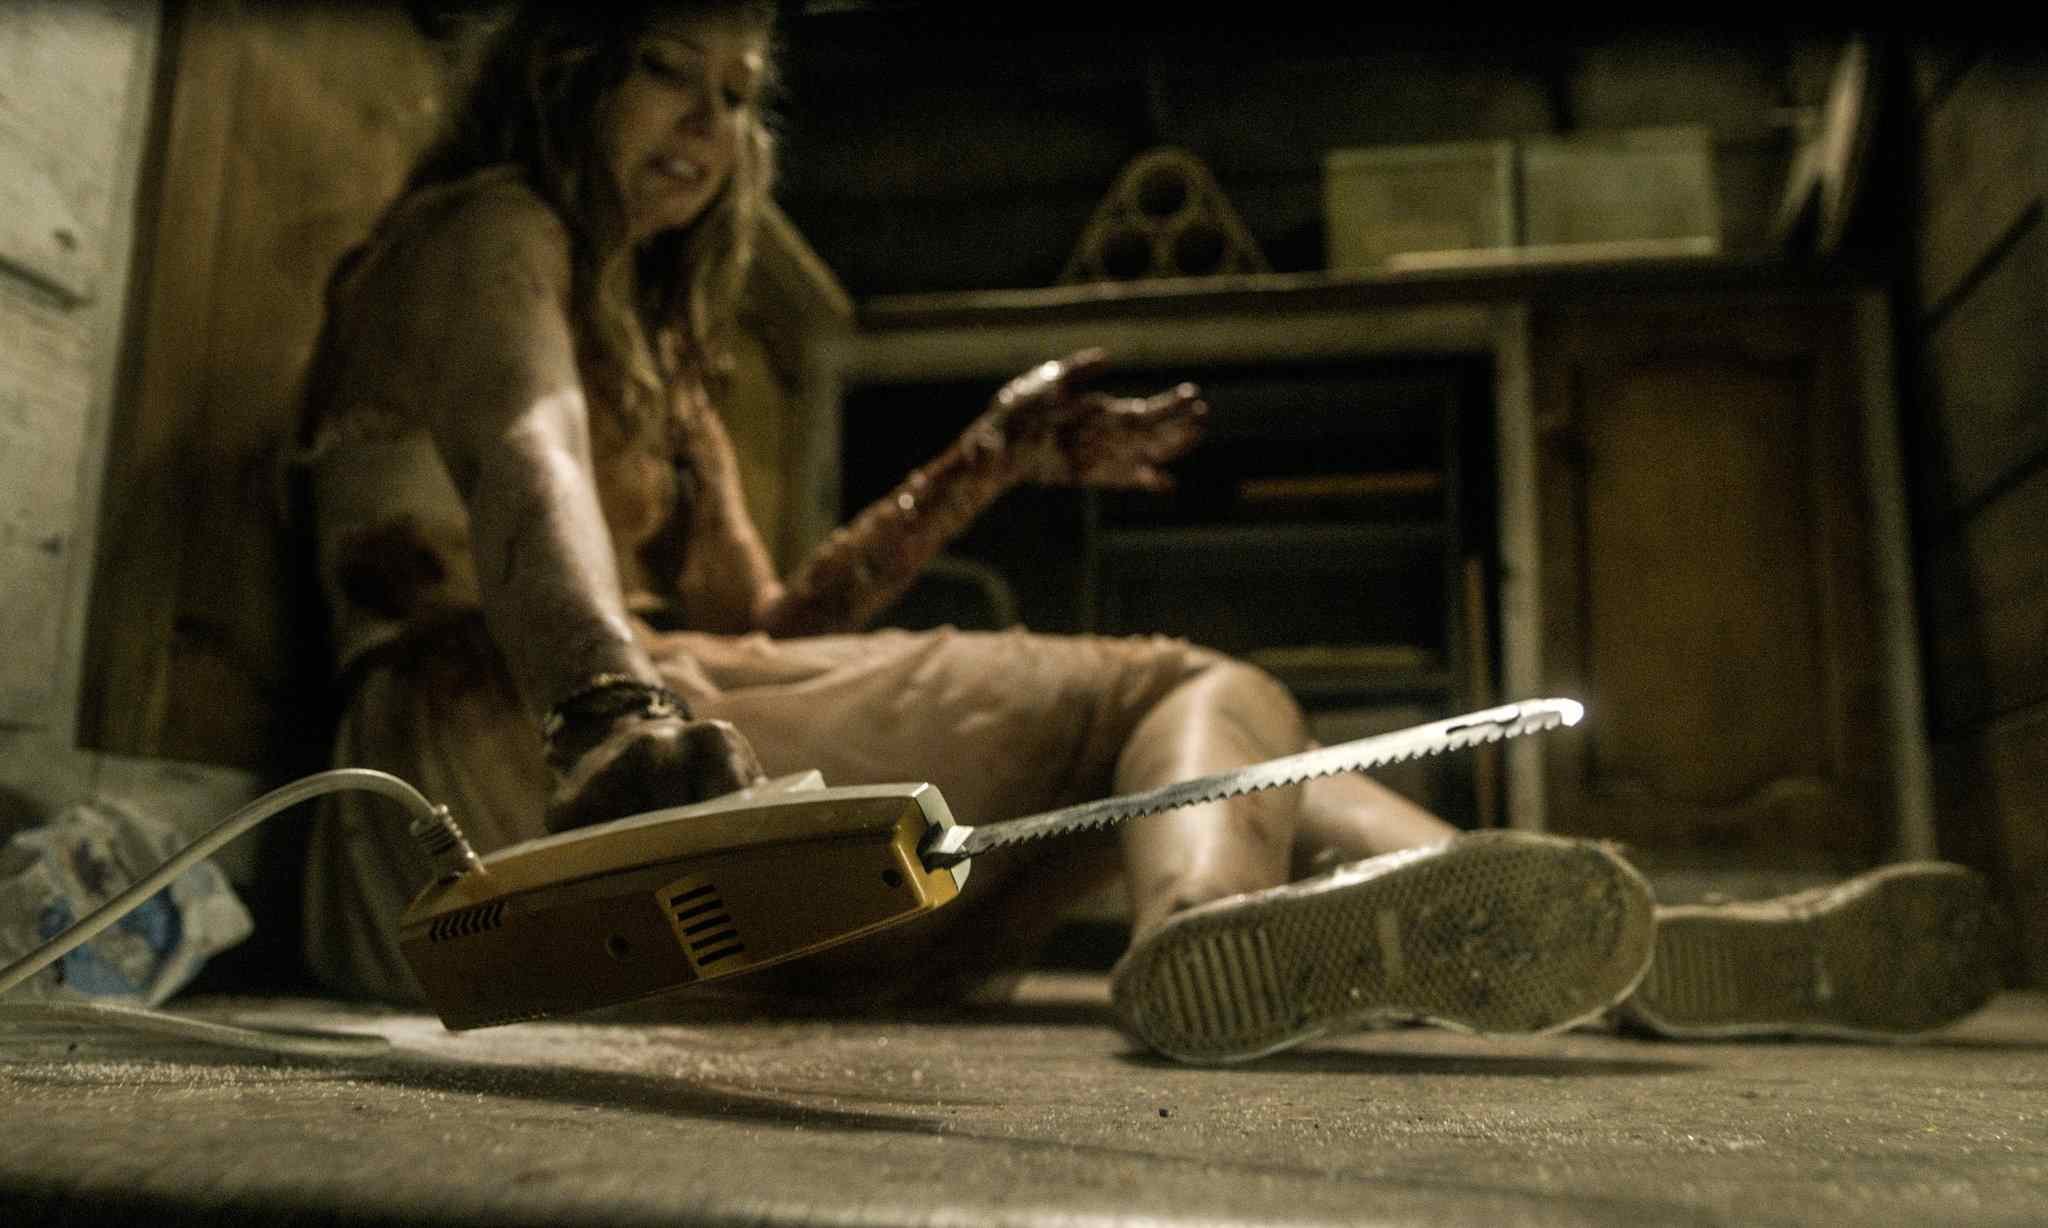 Natalie (Elizabeth Blackmore) in Fede Alvarez's Evil Dead 2013, about to cut her arm off with an electric carving knife.